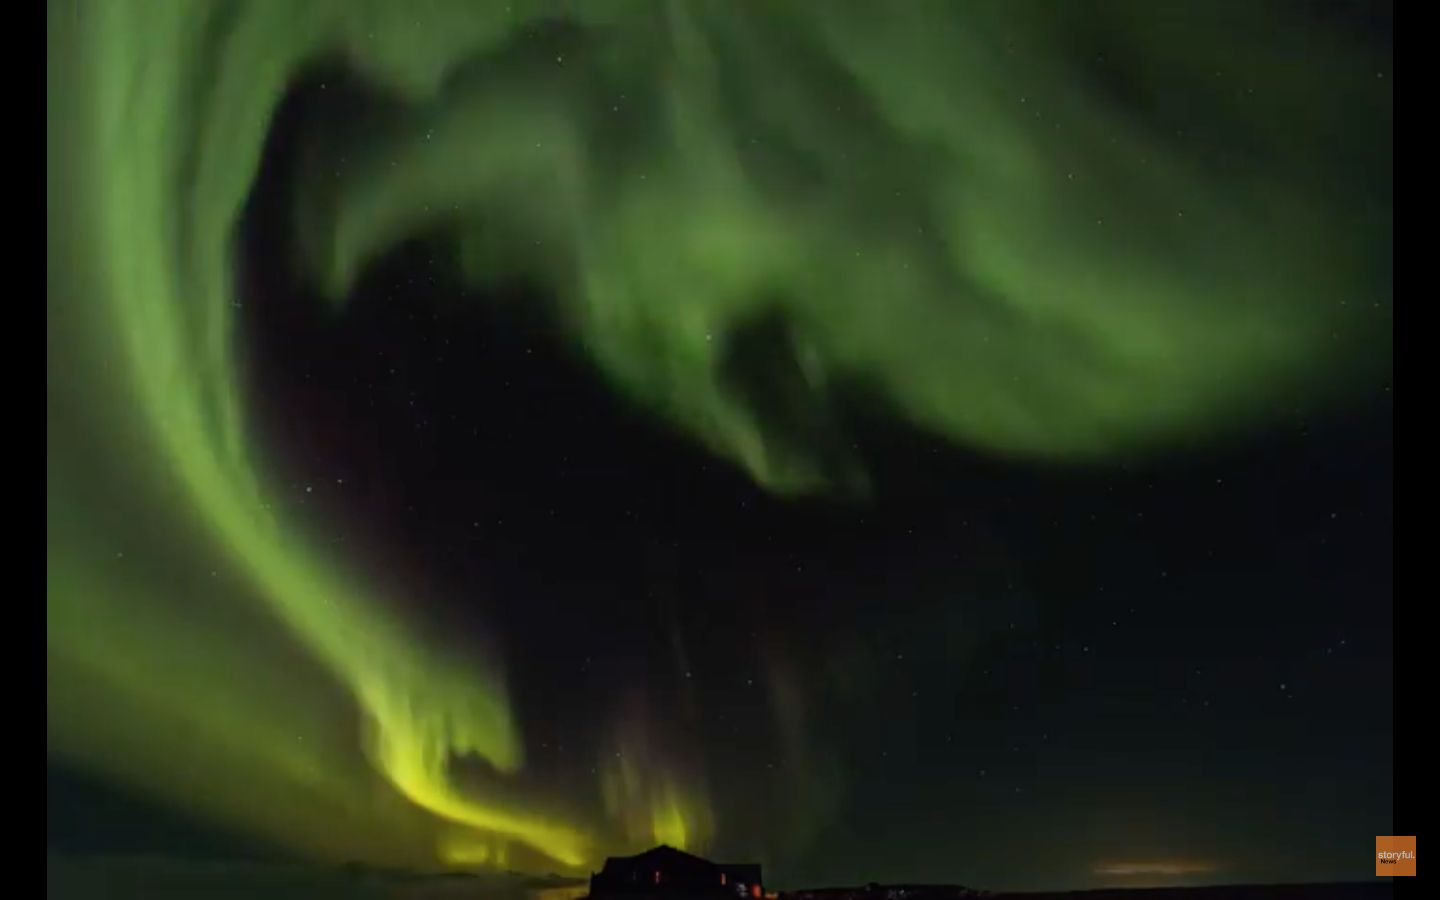 Stunning Time-Lapse Captures The Northern Lights In All Their